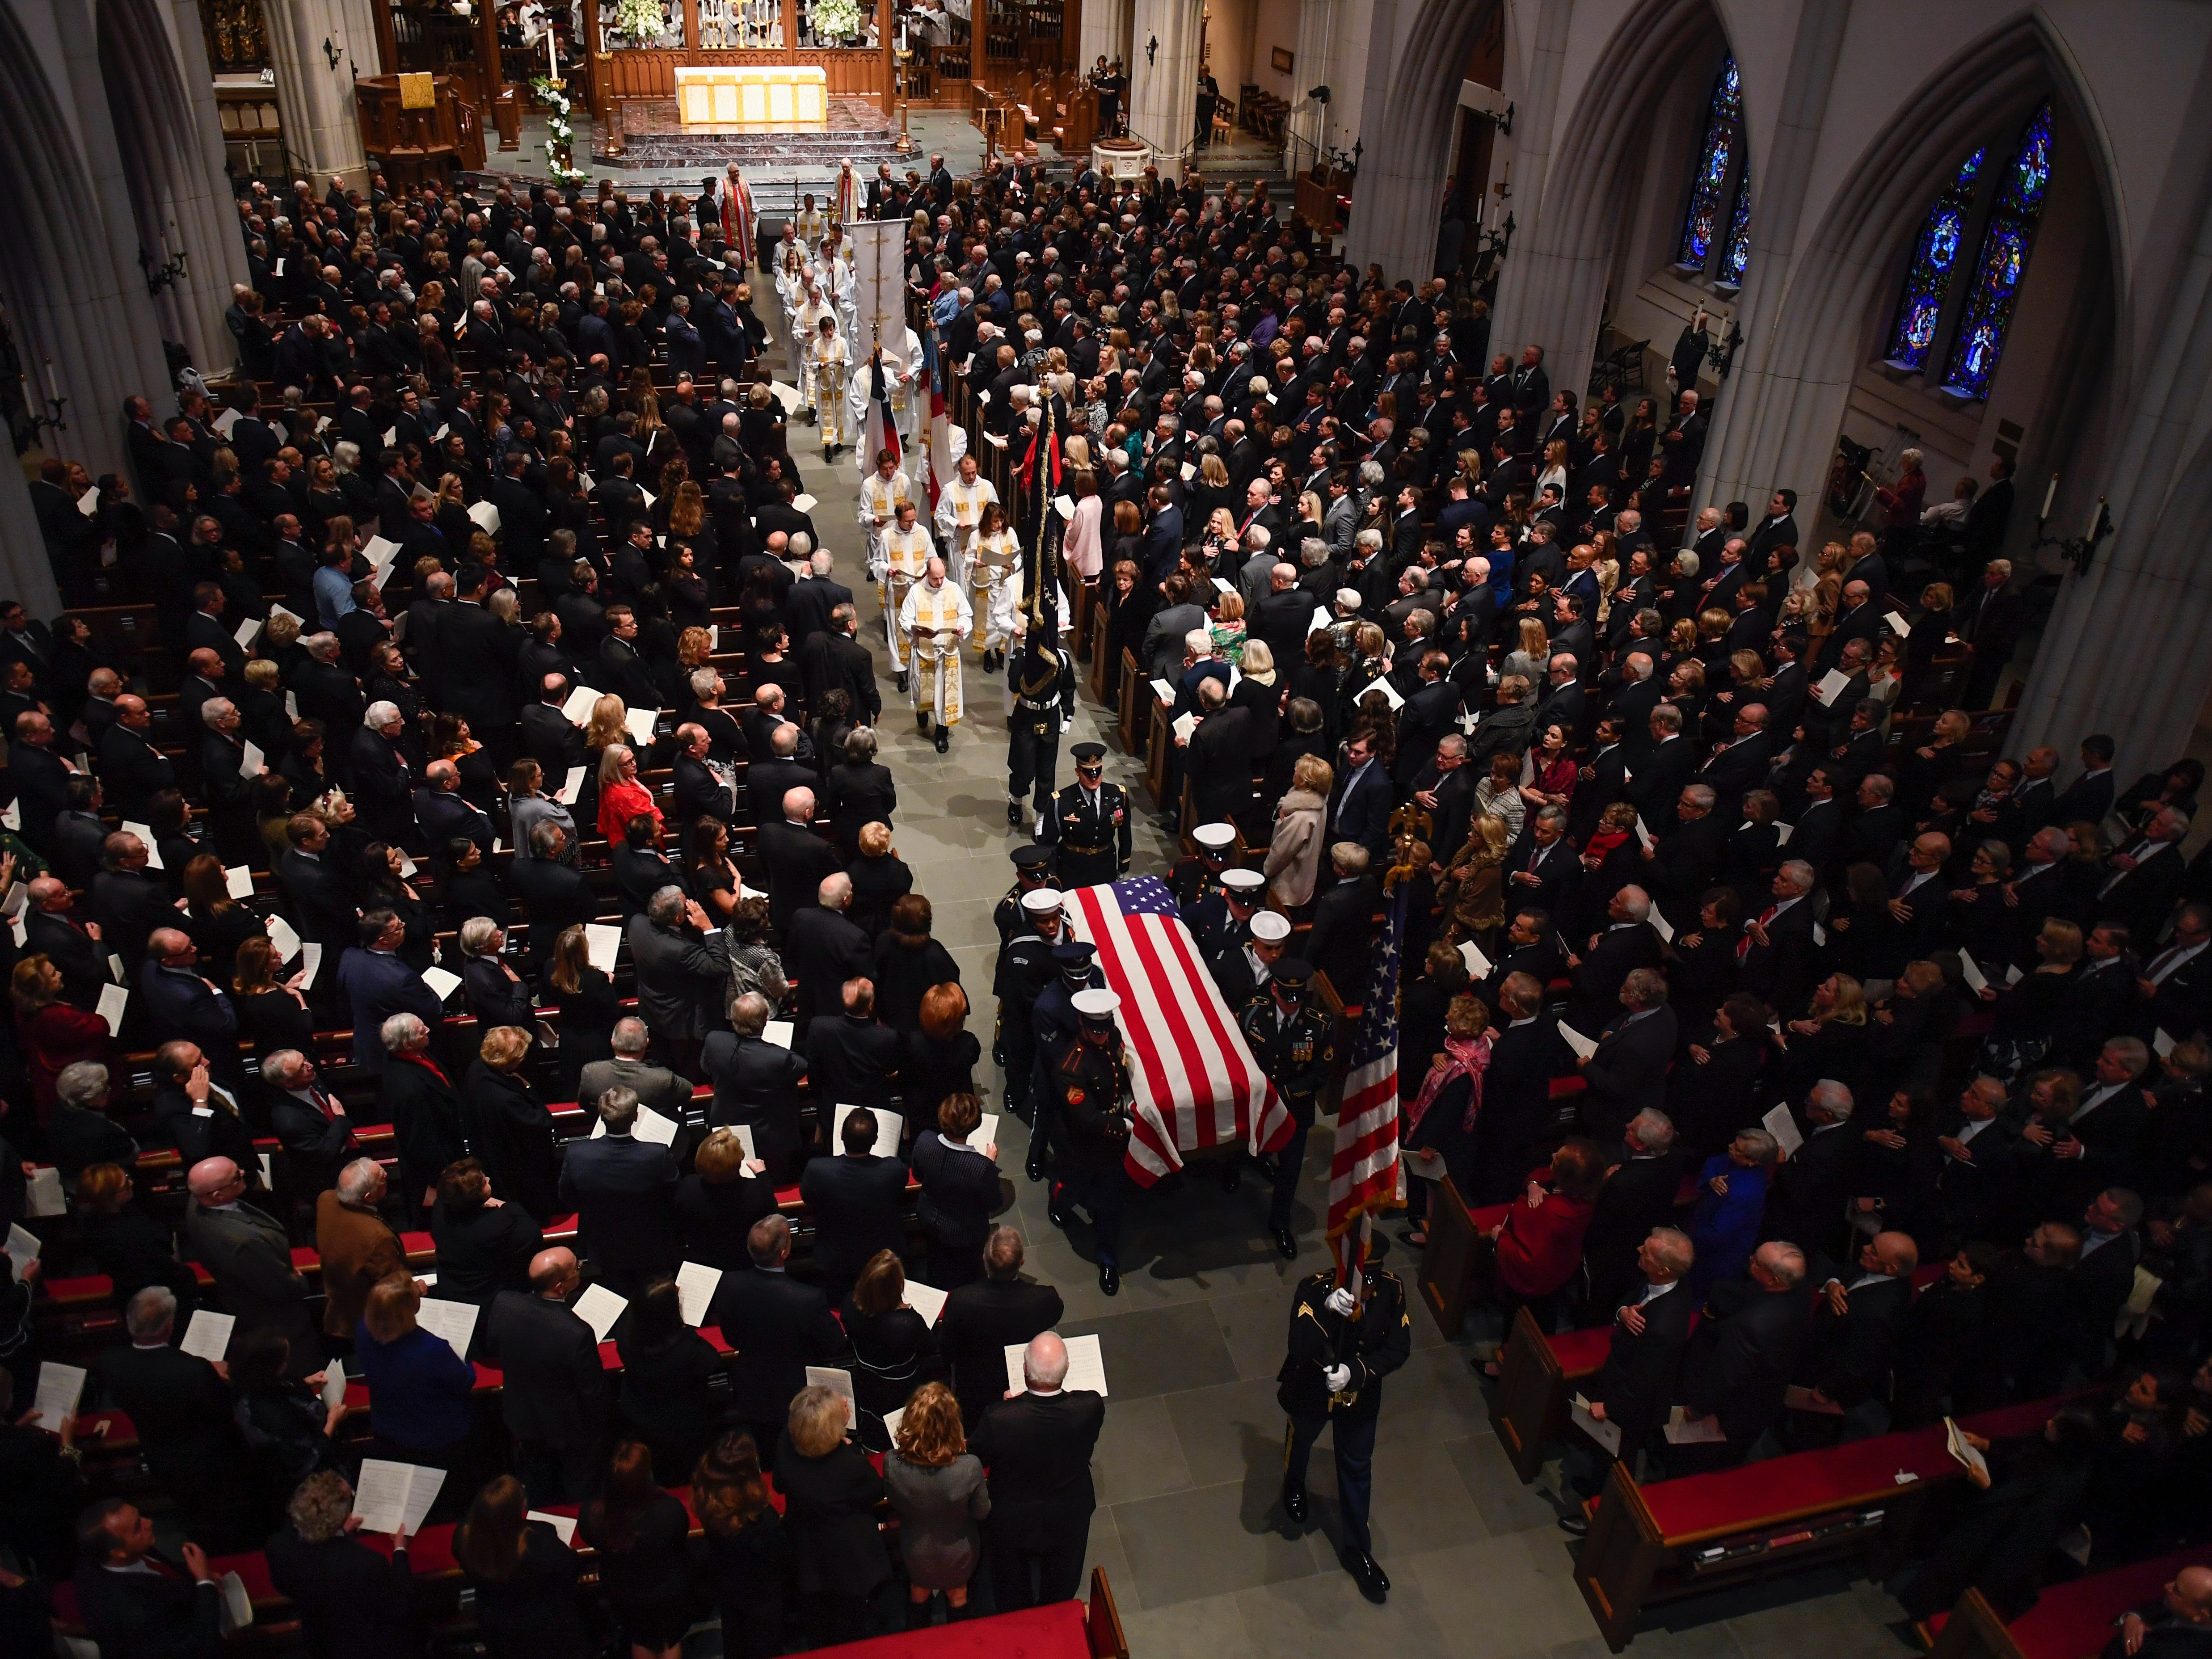 The flag-draped casket of former President George H.W. Bush is carried by a joint services military honor guard out of St. Martin's Episcopal Church Thursday, Dec. 6, 2018, in Houston.